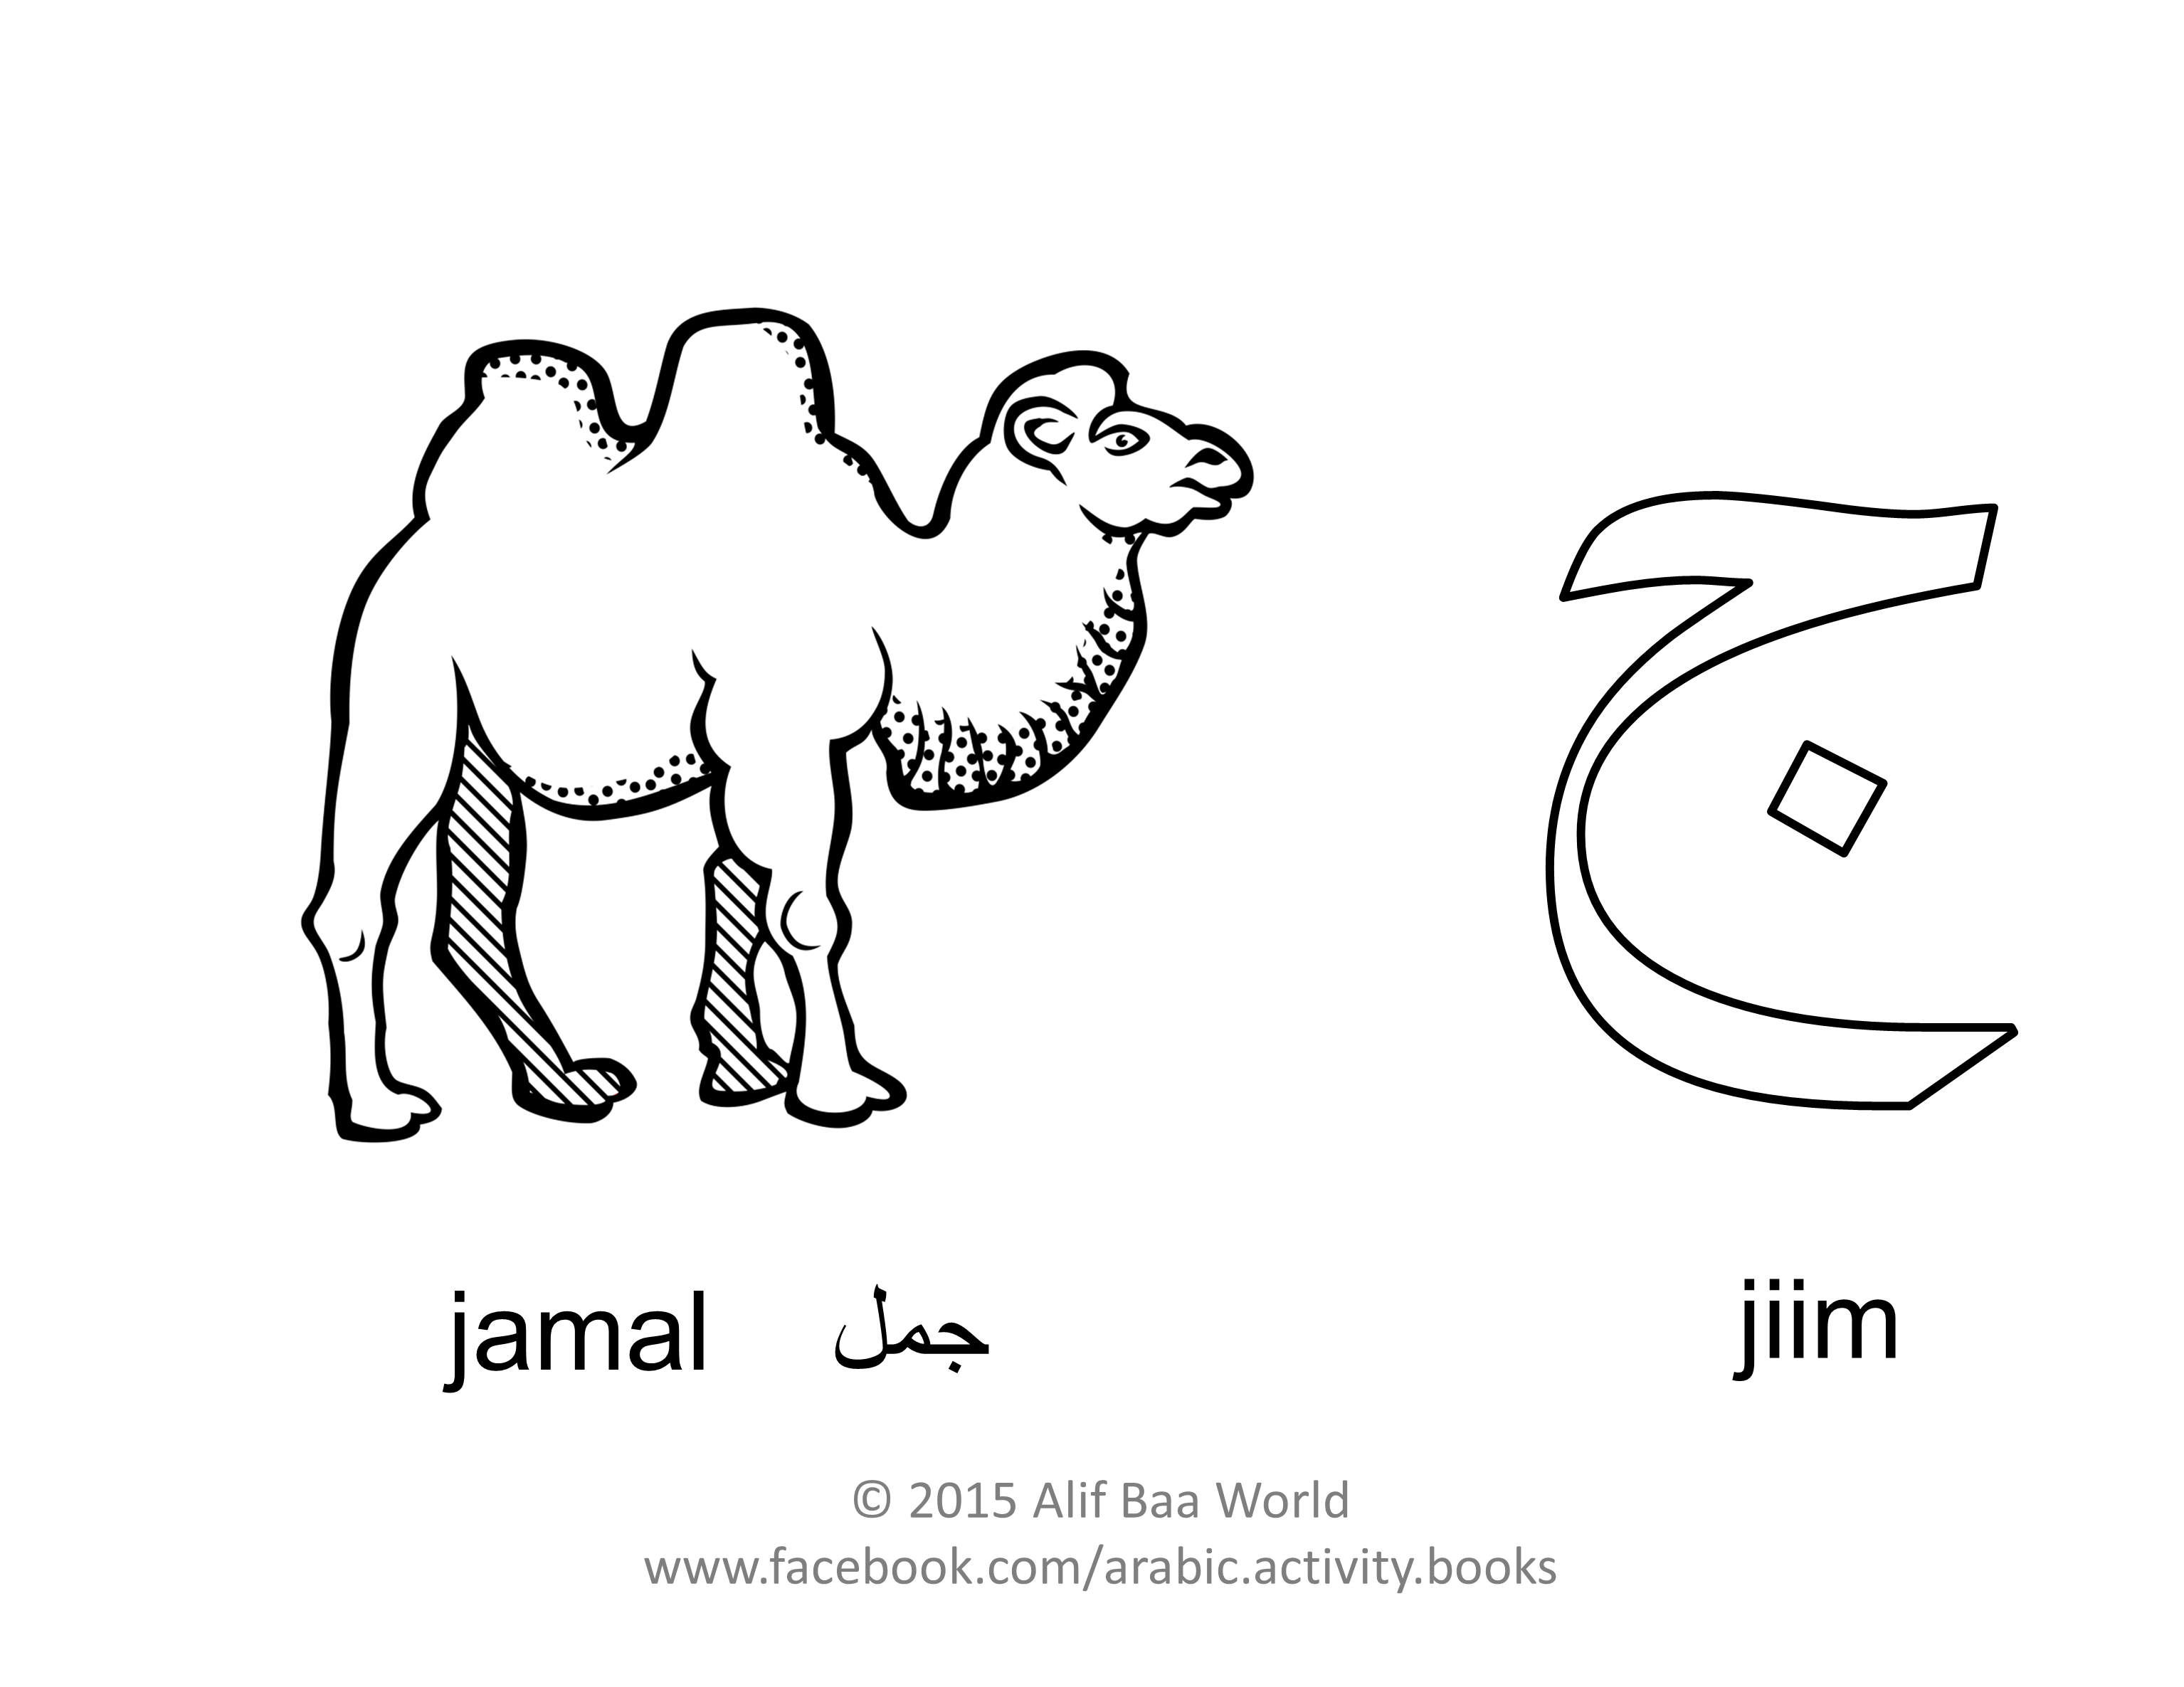 The Fifth Letter Of The Arabic Alphabet Is Name Jiim